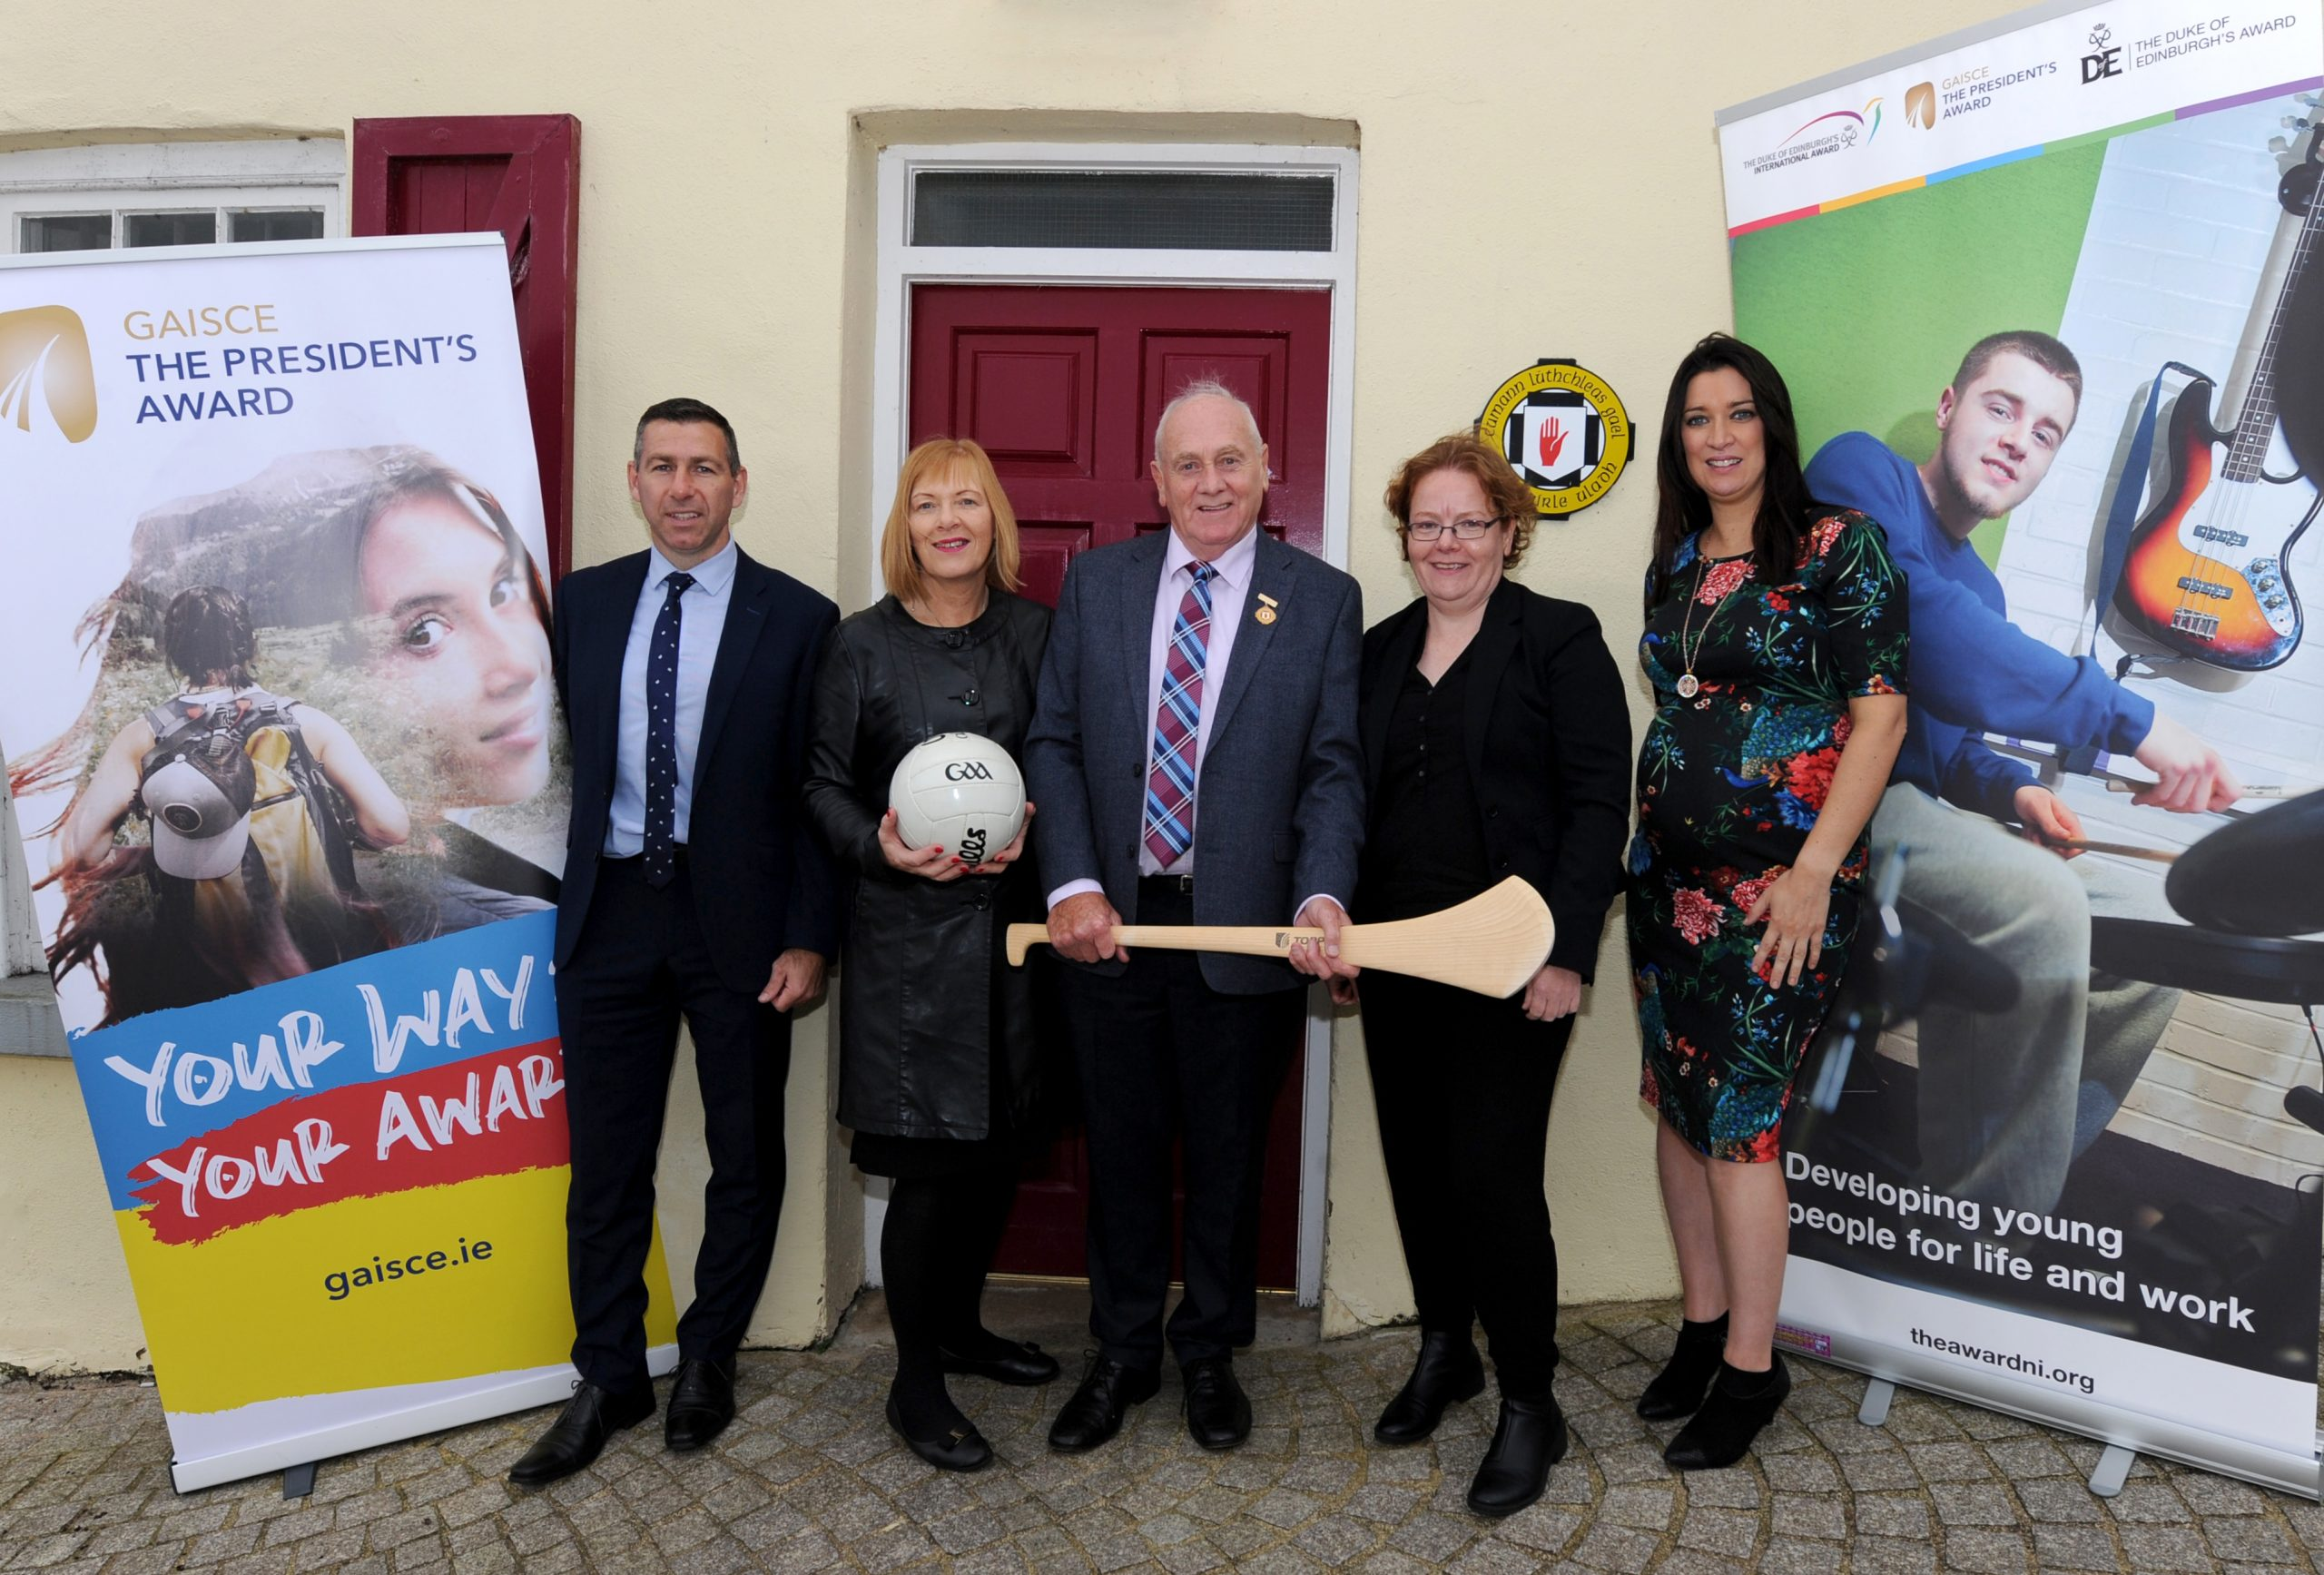 Ulster GAA commitment to developing its Young Leaders